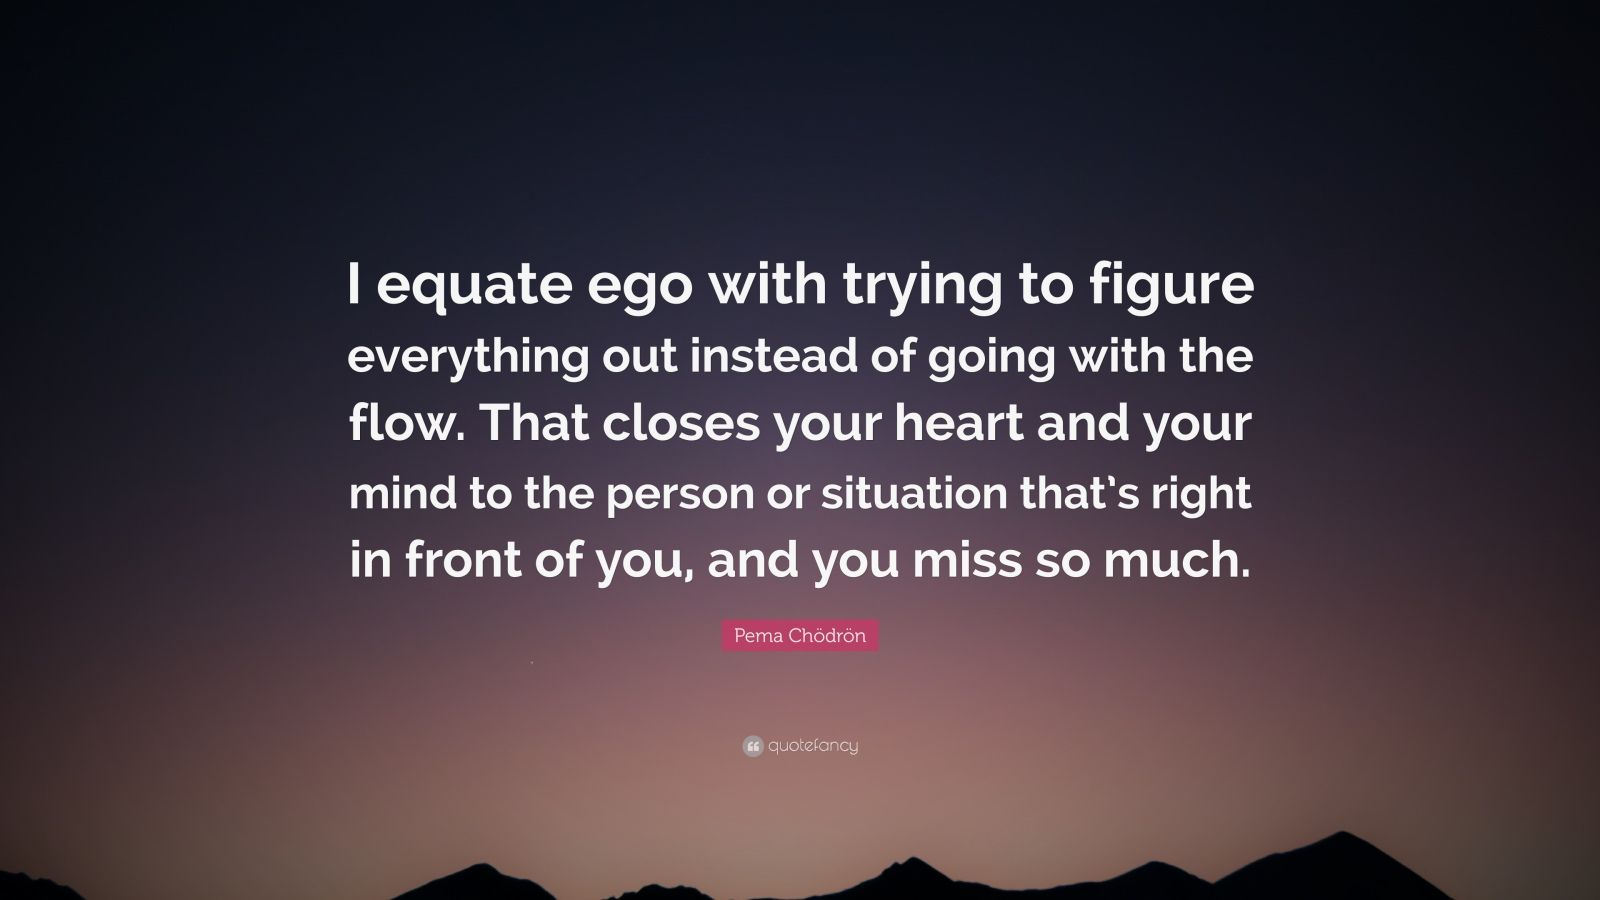 "Pema Chödrön Quote: ""I equate ego with trying to figure everything out instead of going with the flow. That closes your heart and your mind to the person or situation that's right in front of you, and you miss so much."""